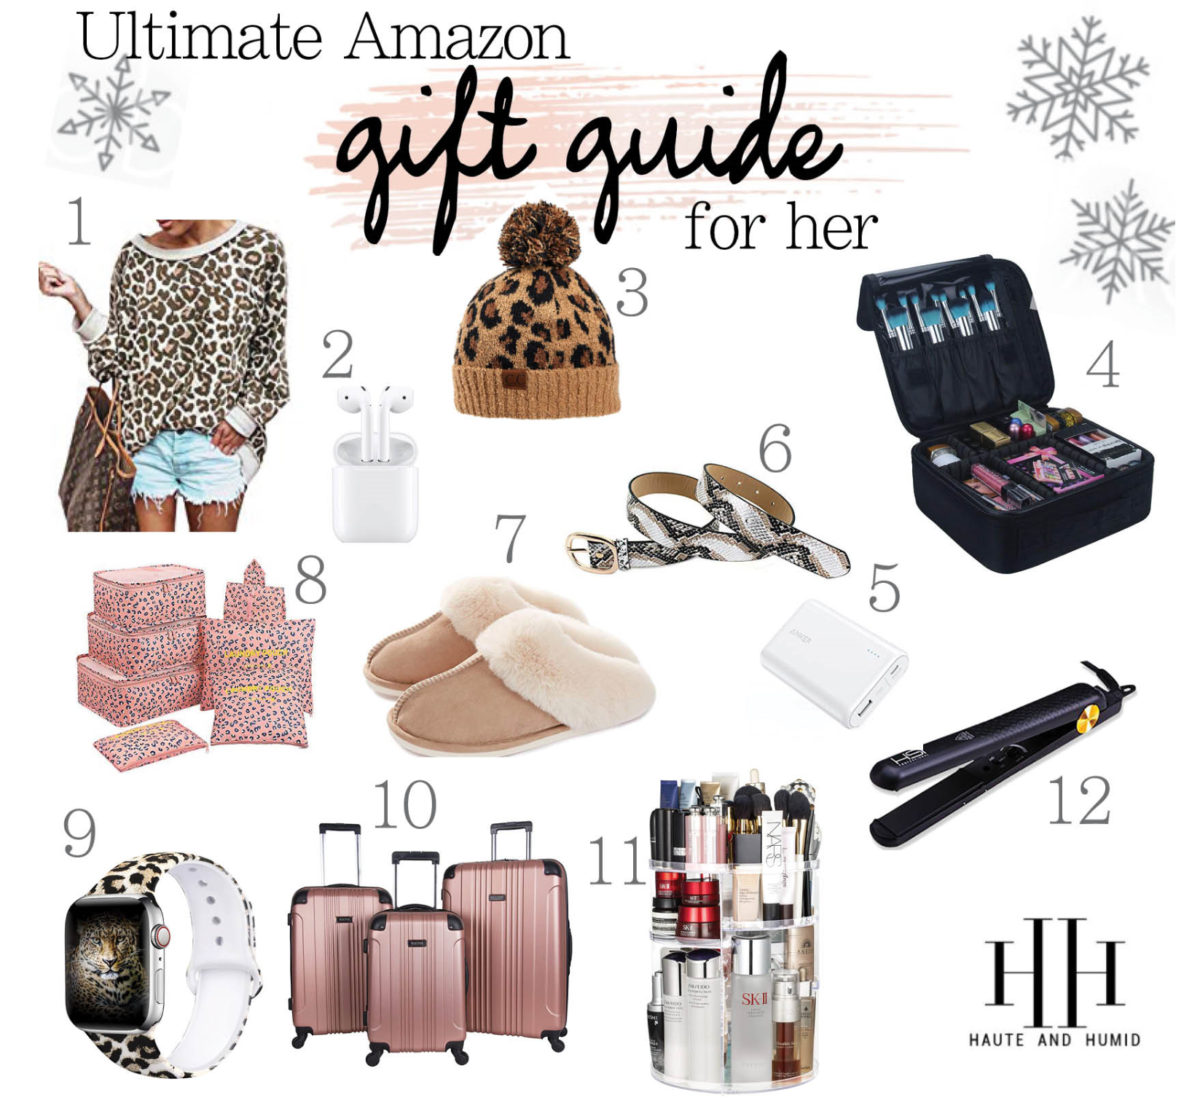 Holiday Gift Guide: 15 Amazon Gifts For Her She'll Love